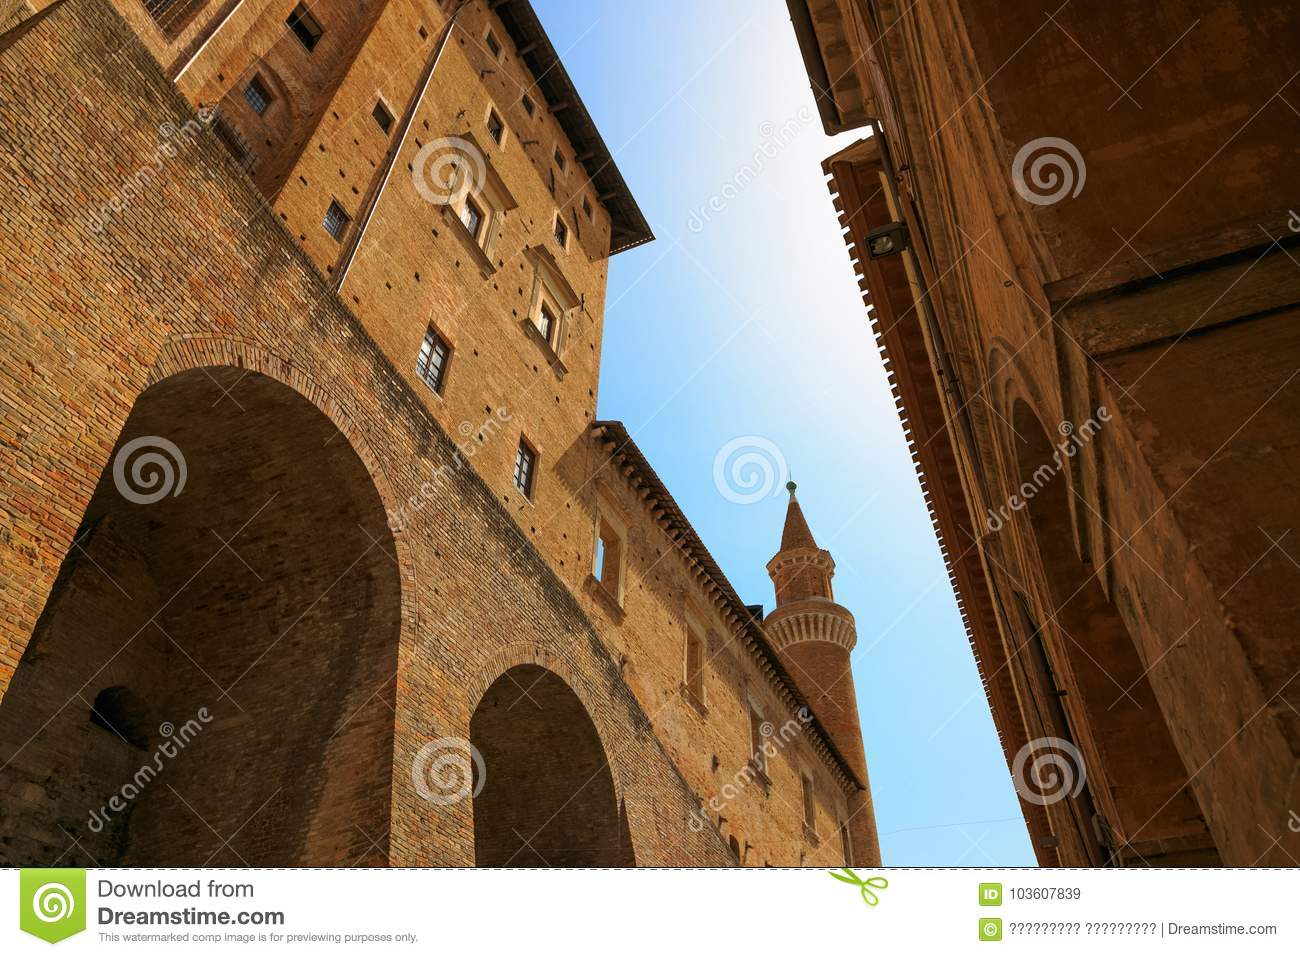 urbino italy august 9 2017 architectural elements of a building